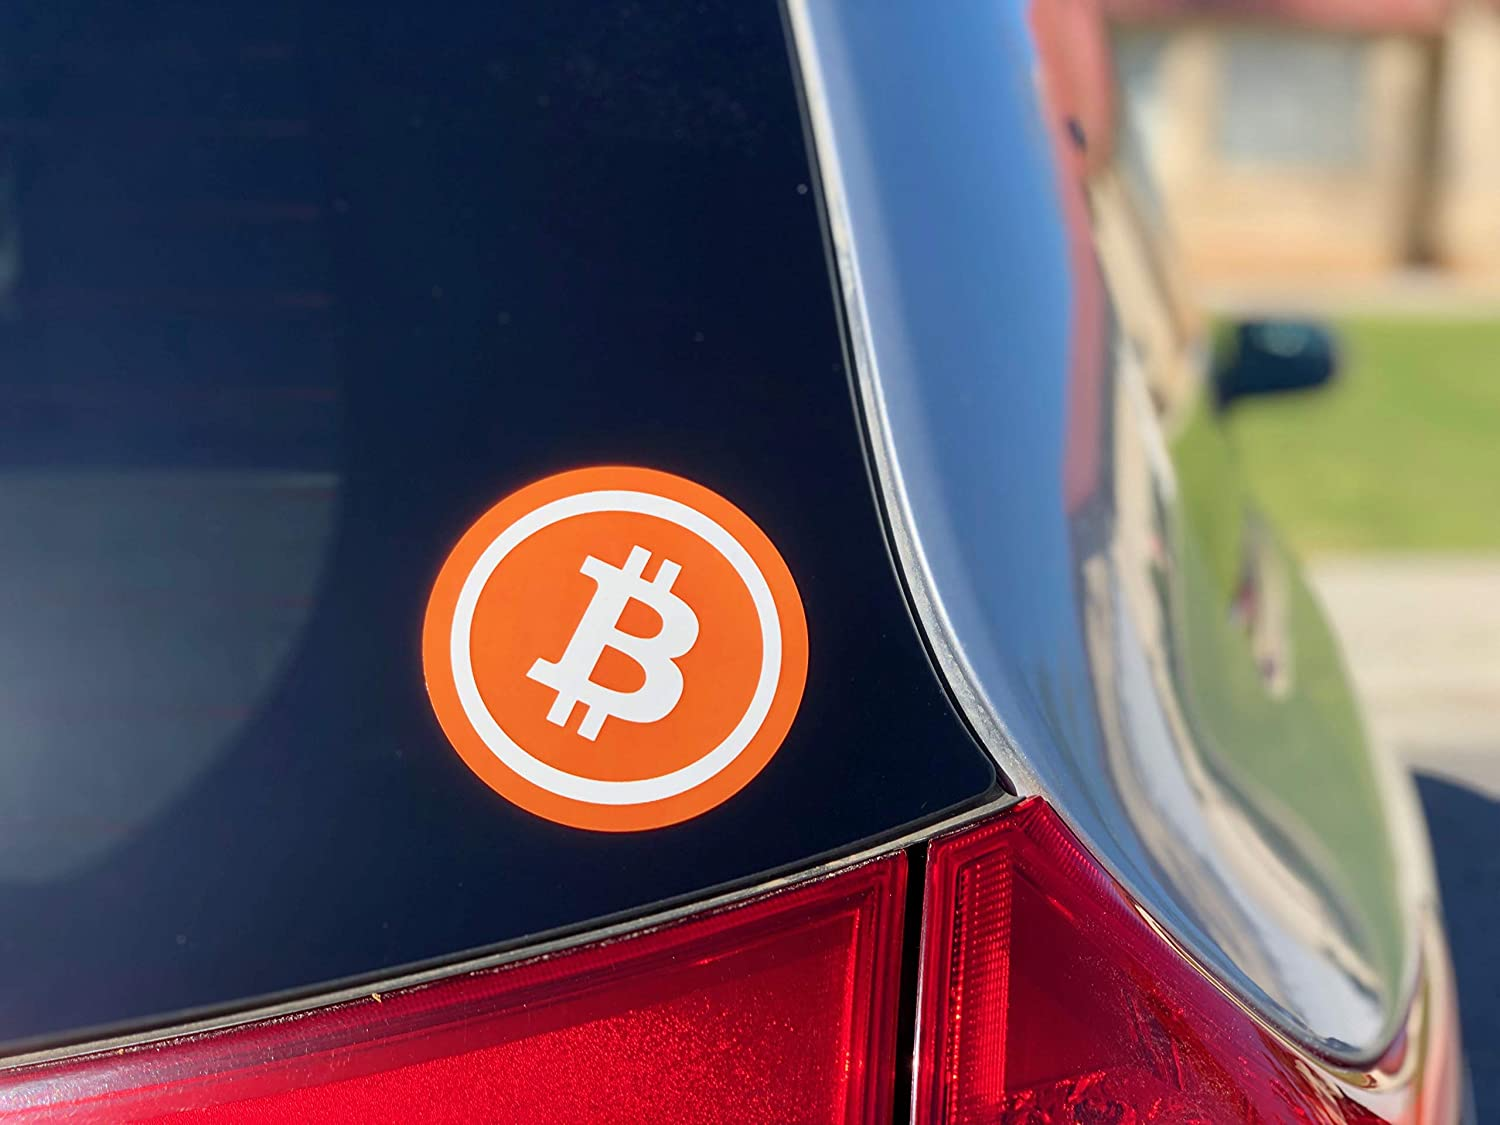 4 Inch Diameter Stickers 4Pillars Bitcoin Cryptocurrency Bumper Sticker Perfect for Cars Blockchain